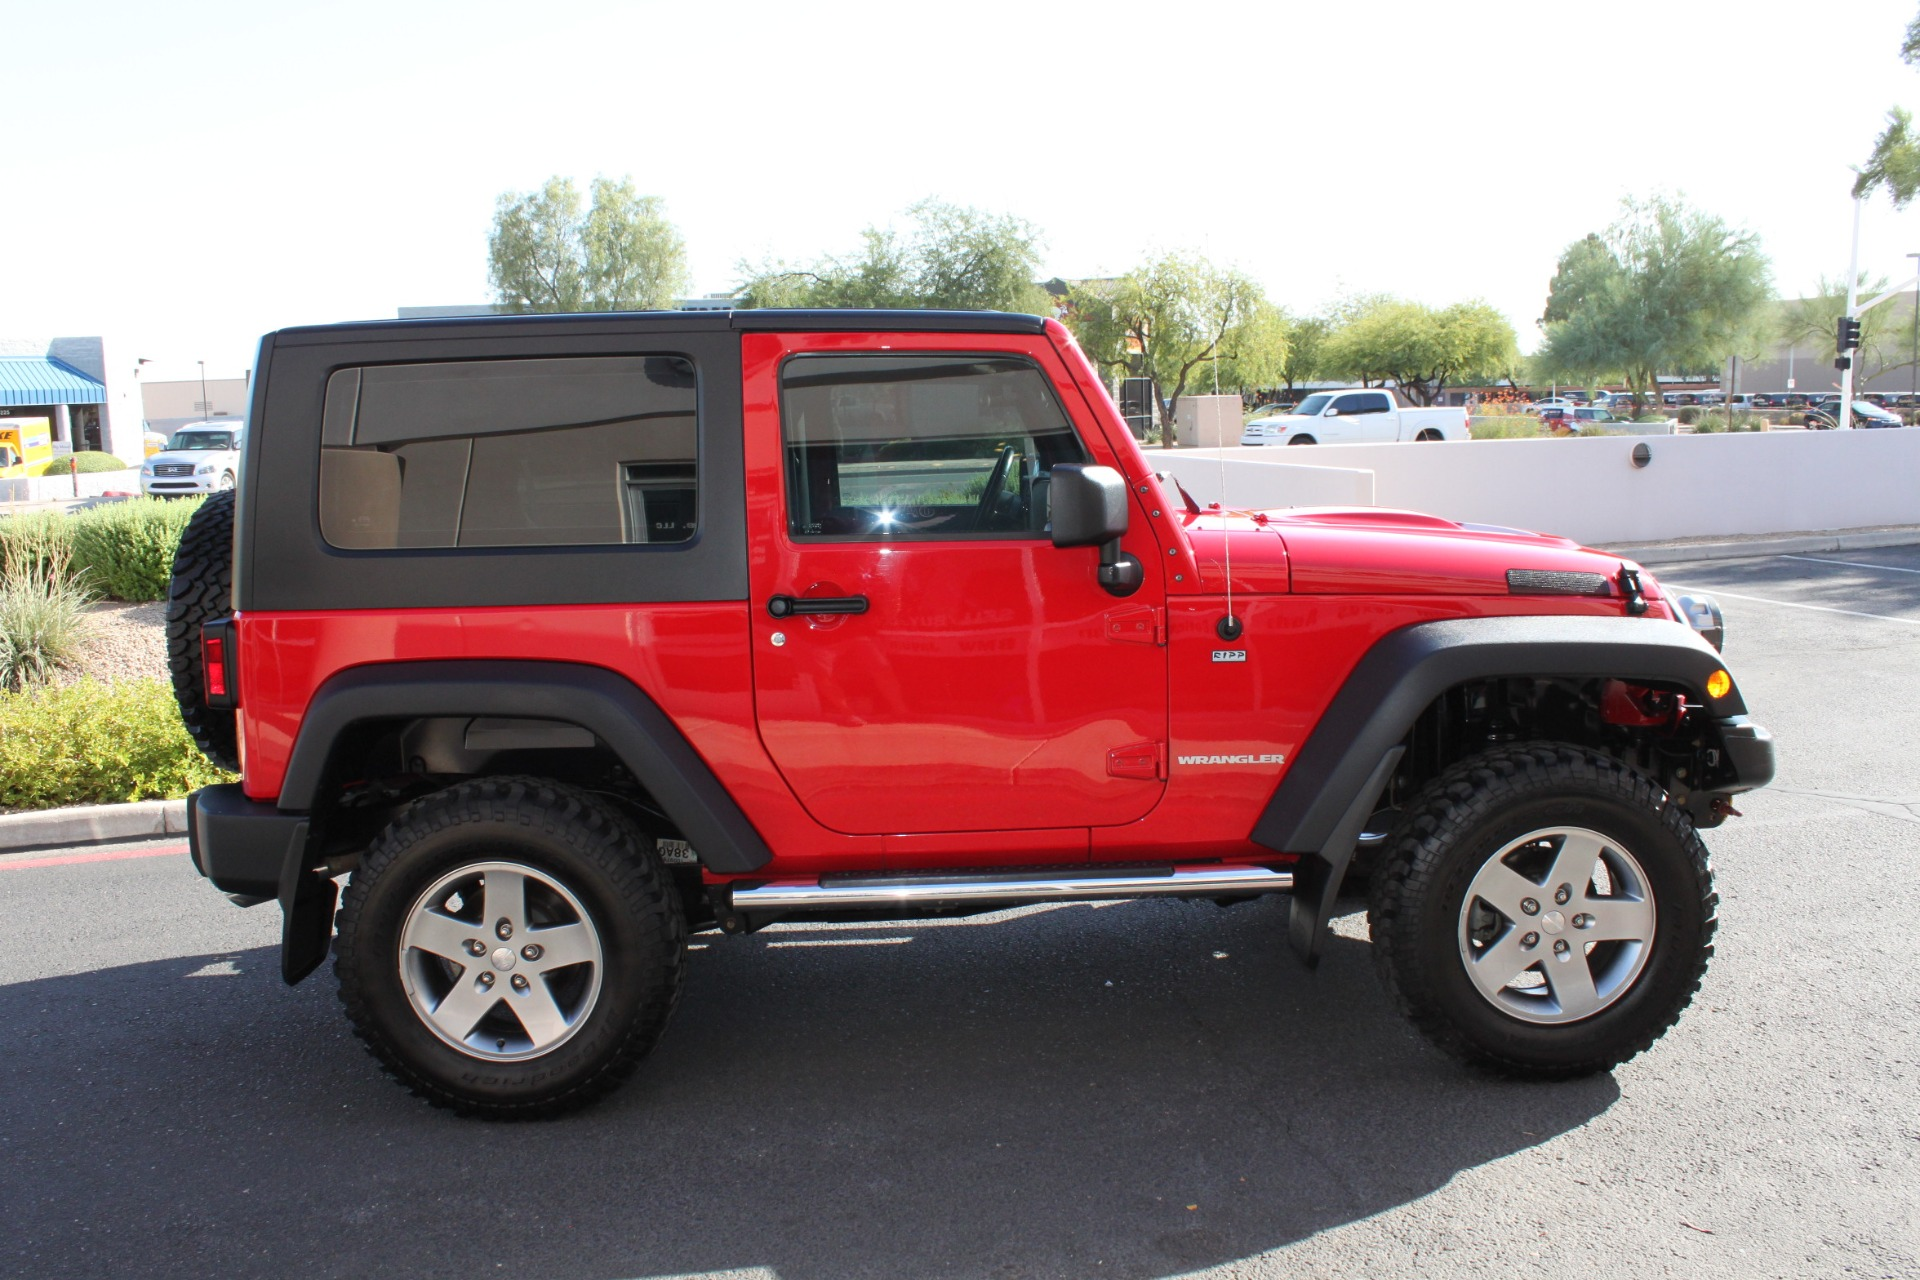 Used-2007-Jeep-Wrangler-X-Ripp-Supercharged-Mercedes-Benz